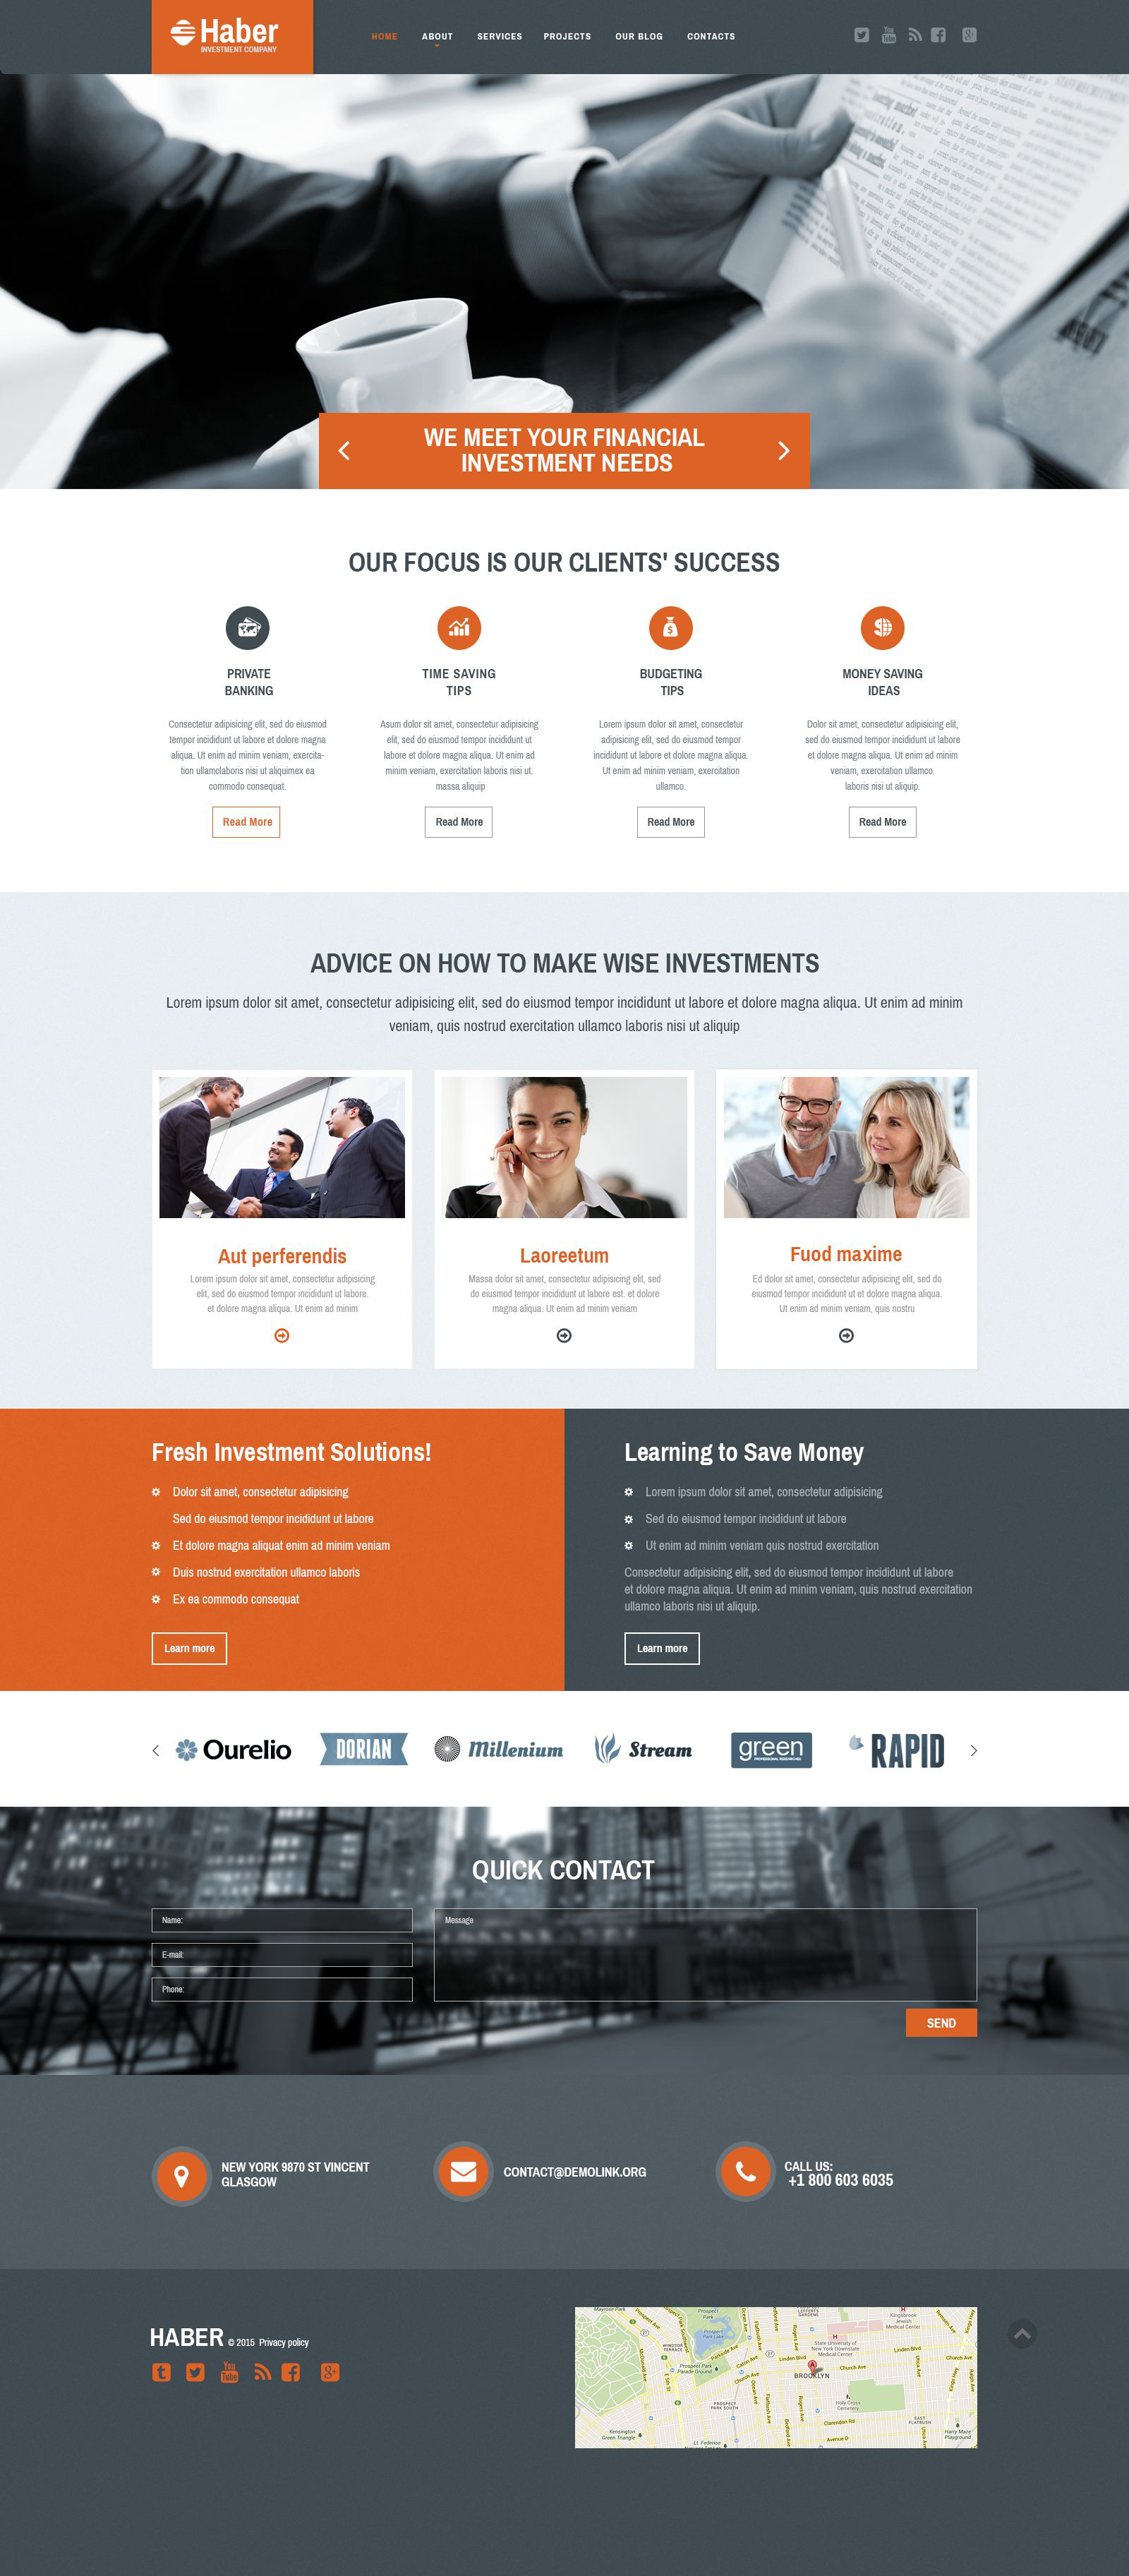 The Haber Business Responsive Javascript Animated Design 53976, one of the best website templates of its kind (business, most popular), also known as haber business website template, success company website template, enterprise solution website template, business website template, industry website template, technical website template, clients website template, customer support website template, automate website template, flow website template, services website template, plug-in website template, flex website template, profile website template, principles website template, web products website template, technology system and related with haber business, success company, enterprise solution, business, industry, technical, clients, customer support, automate, flow, services, plug-in, flex, profile, principles, web products, technology system, etc.